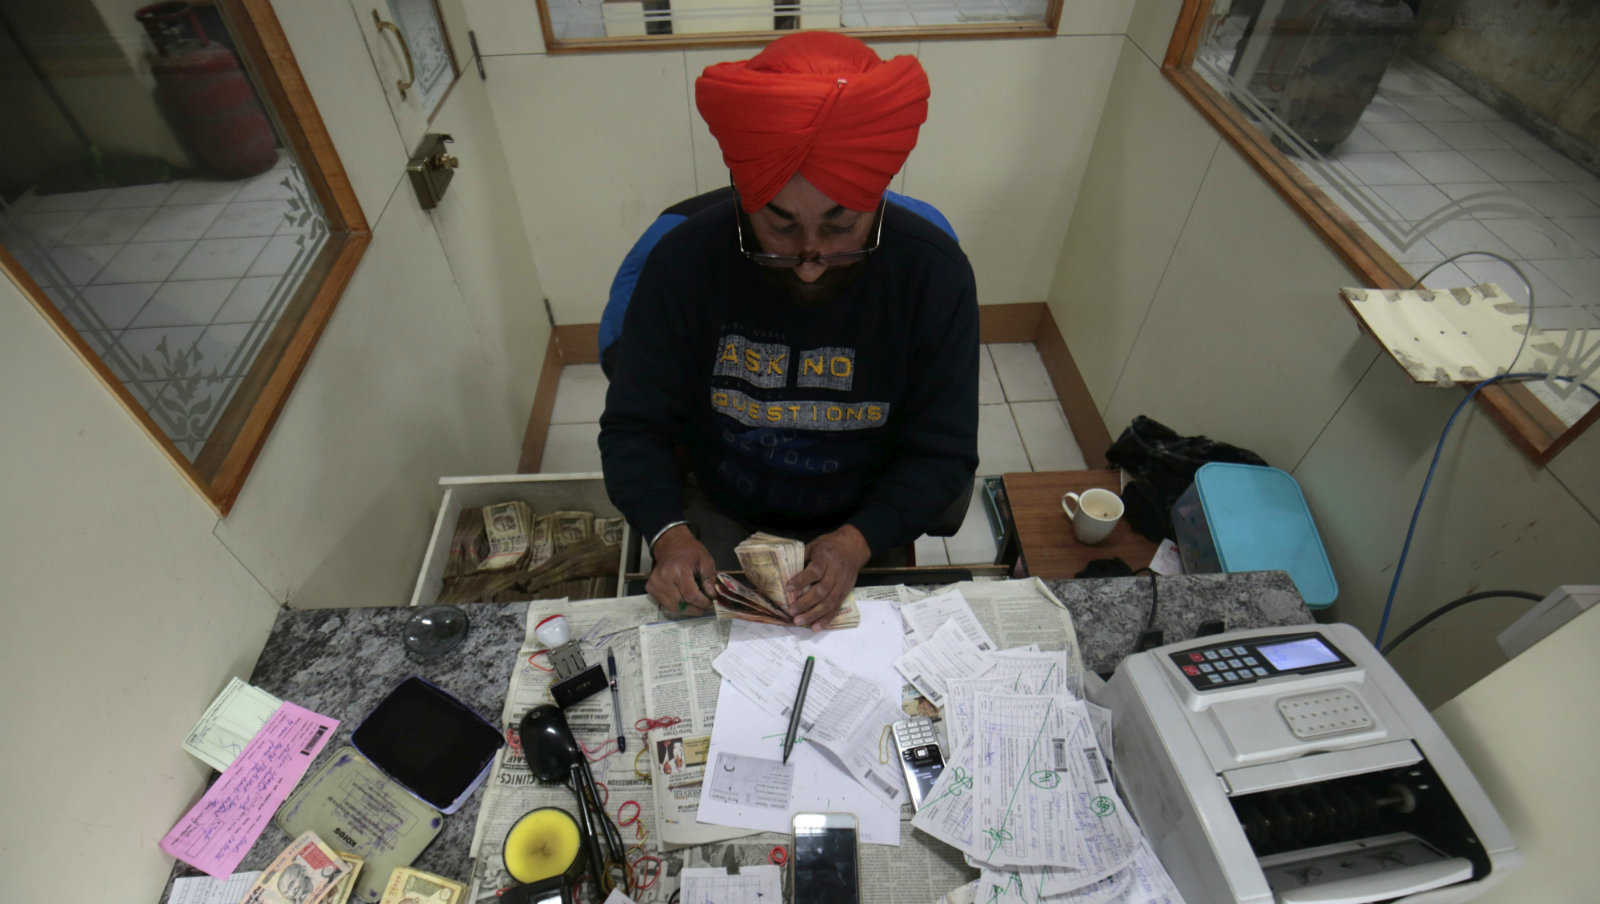 A bank executive counts discontinued 1000 Indian Rupee notes at a bank in Srinagar, the summer capital of Indian Kashmir, 10 November 2016. In a major decision, Indian Prime Minister, in an address to the nation has stated that currency notes with denomination values of INR 500 (about 7.5 US dollars) and INR 1000 (about 15 US dollars) respectively will be invalid and will be discontinued from midnight of 08 November 2016. Indian government also introduced the new notes of INR 500 (about 7.5 US dollars) and INR 2000 (about 30 US dollars) and citizens would be allowed to exchange their old currency notes through the banks and post offices till 30 December 2016. This is being considered as a major step towards curbing the problem of black money.